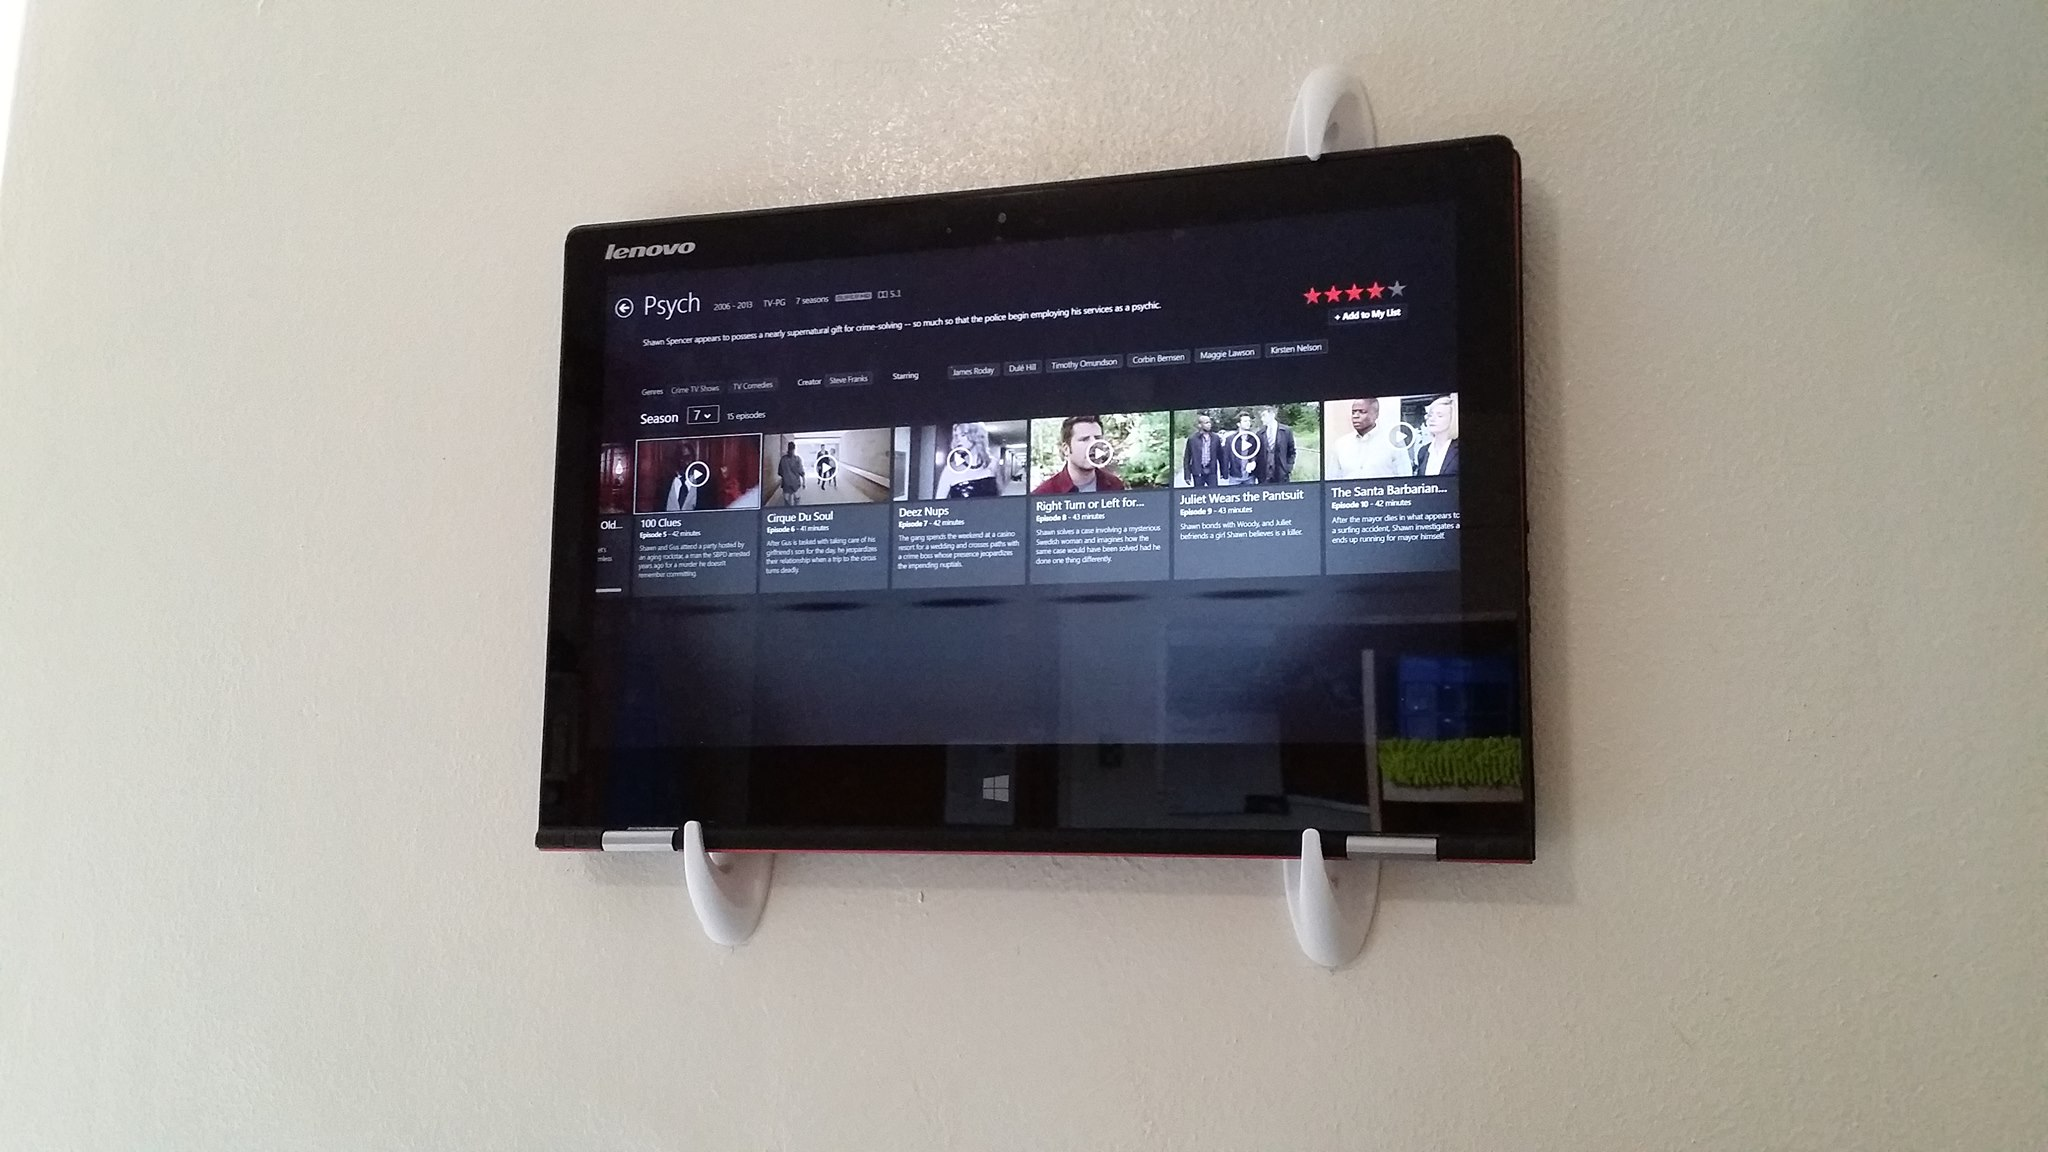 Tablet Wall Hooks Tv Amp Phone Volume Probs Silly